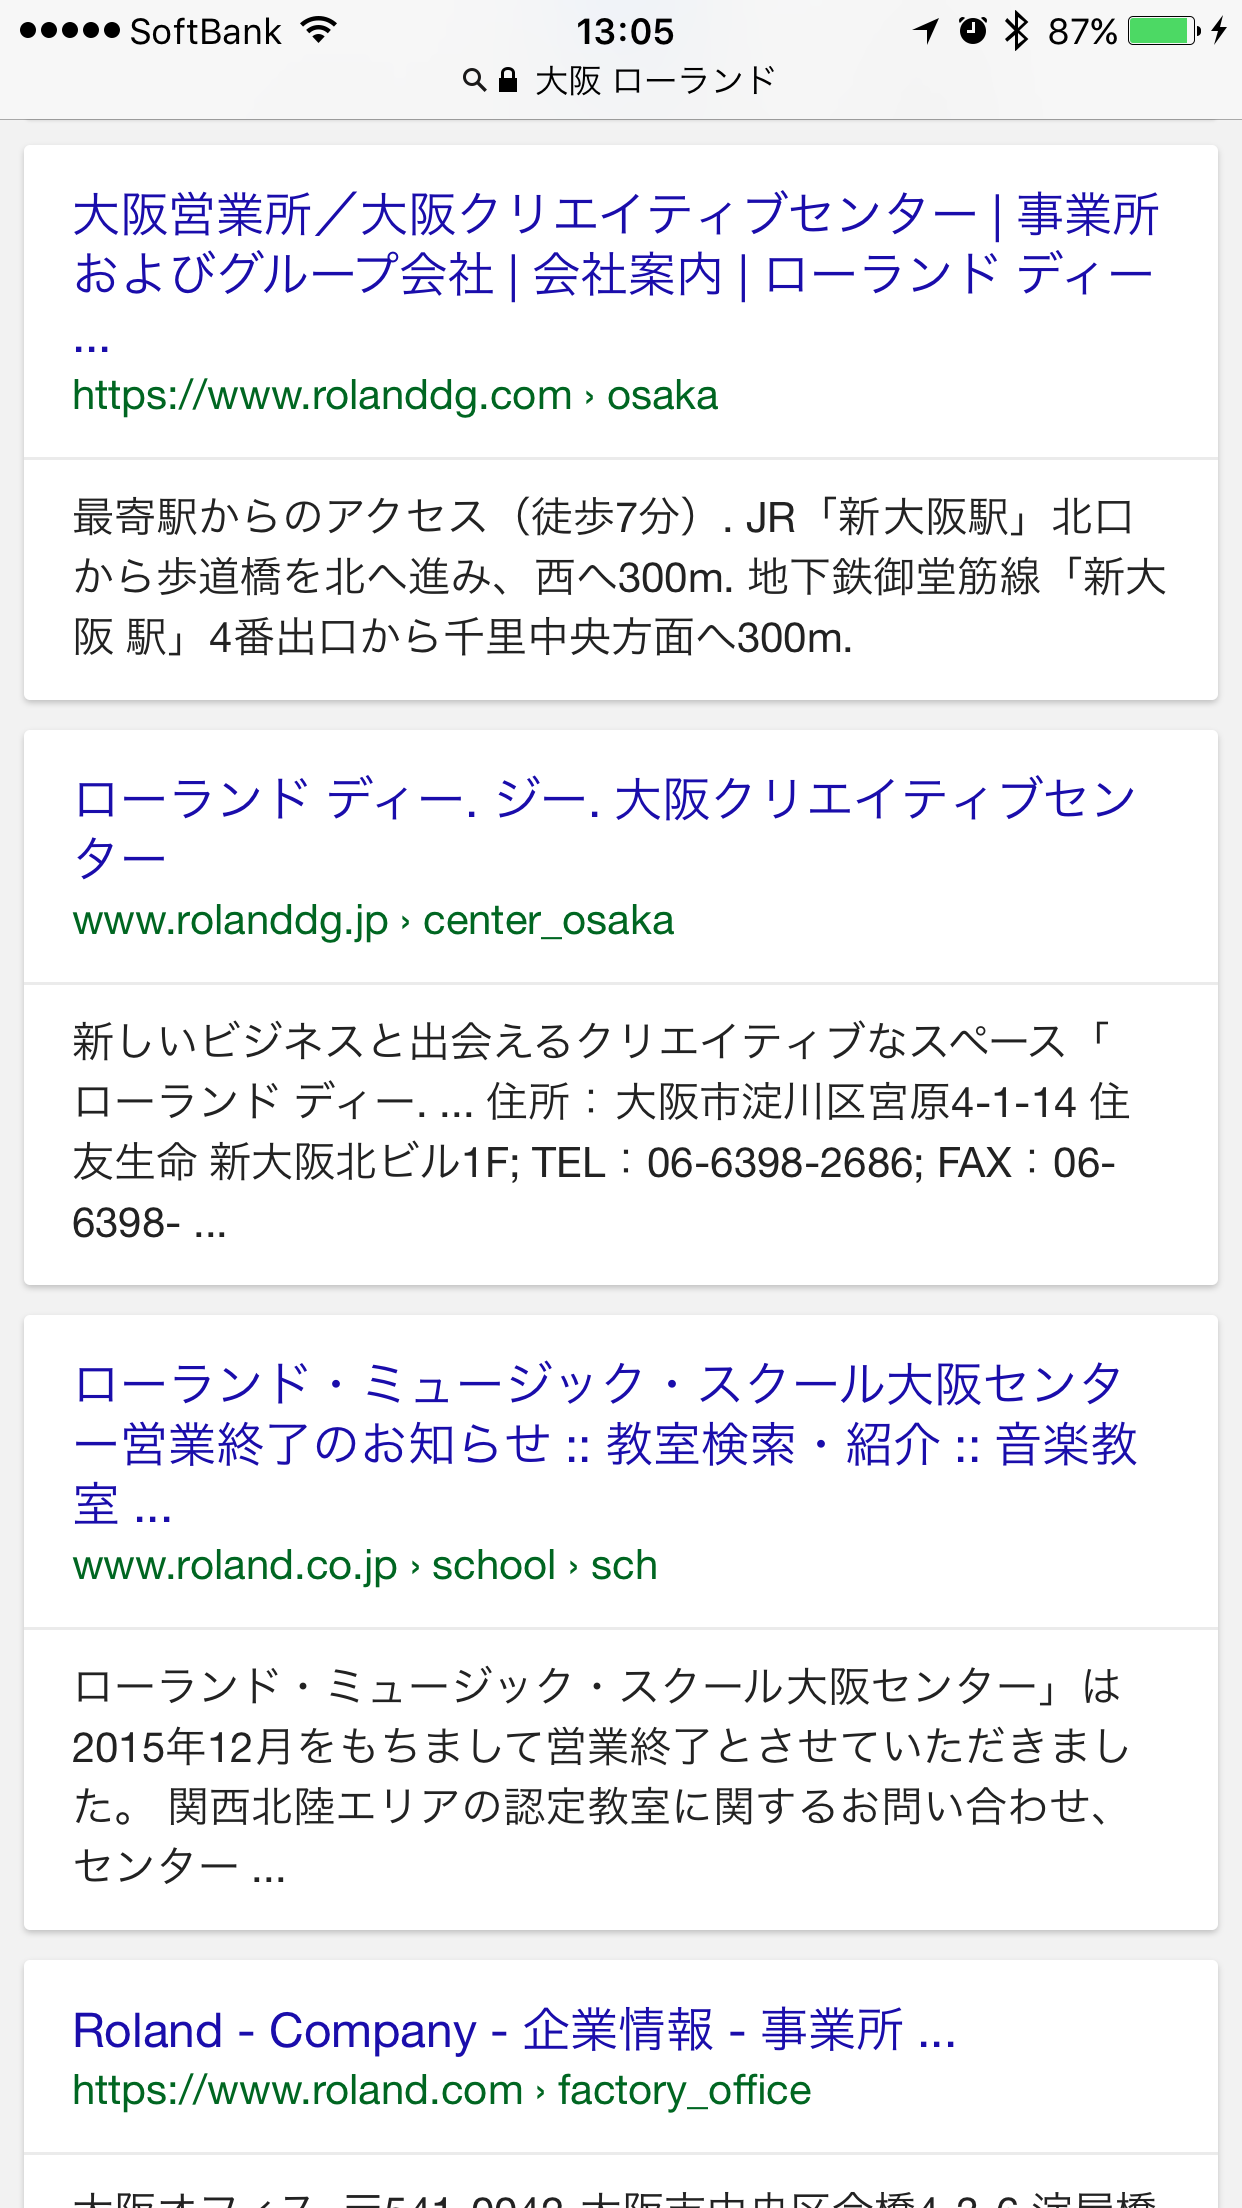 20161208010553.png